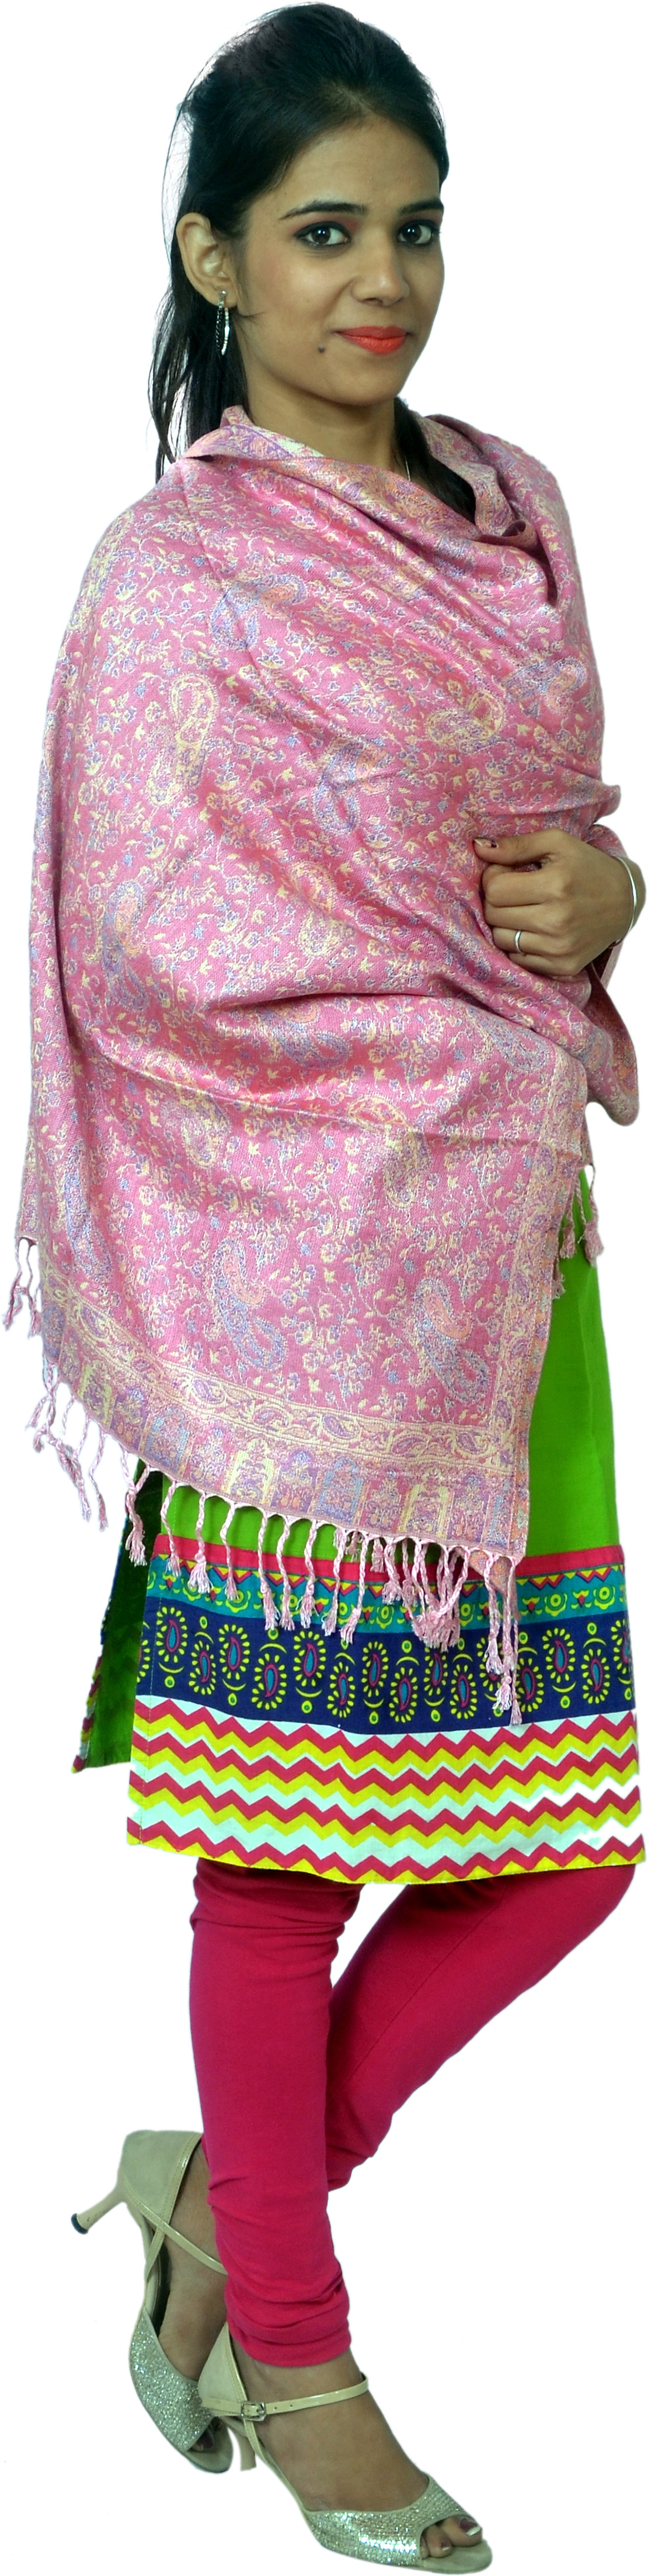 Cloud9Emporio Sat0057 Viscose Floral Print Womens Shawl